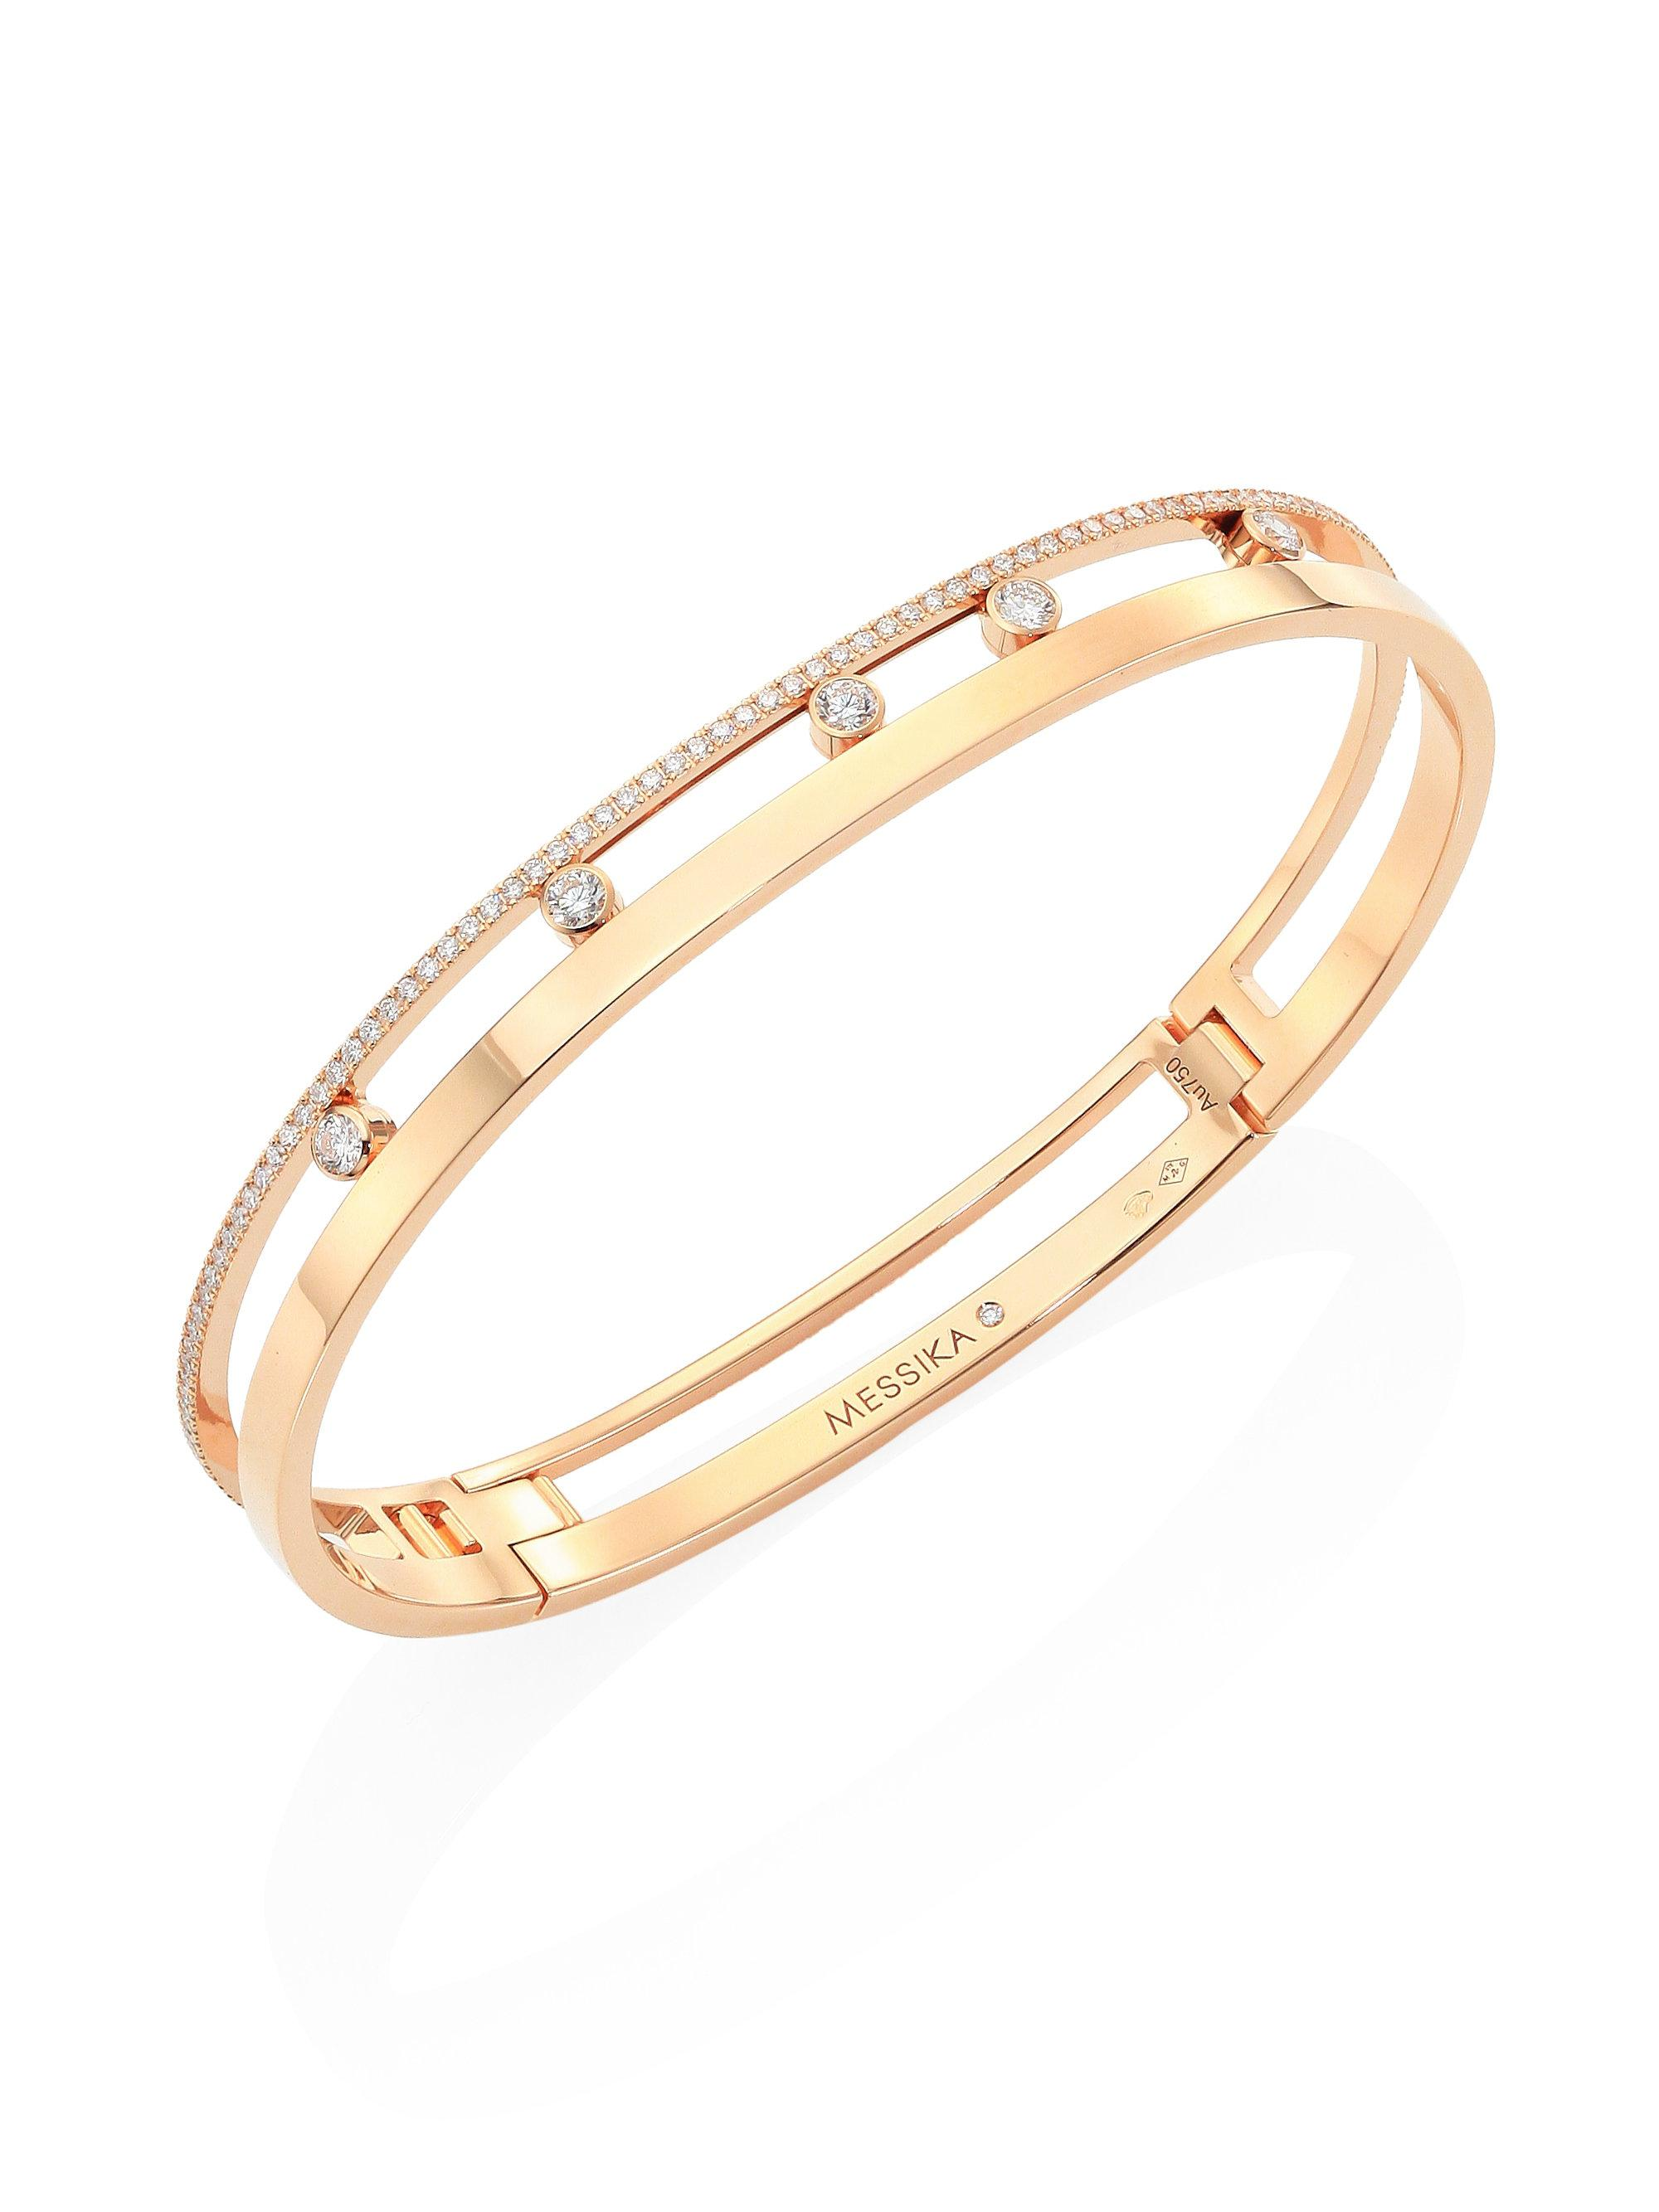 jewelry pinterest wire gold bangles pin